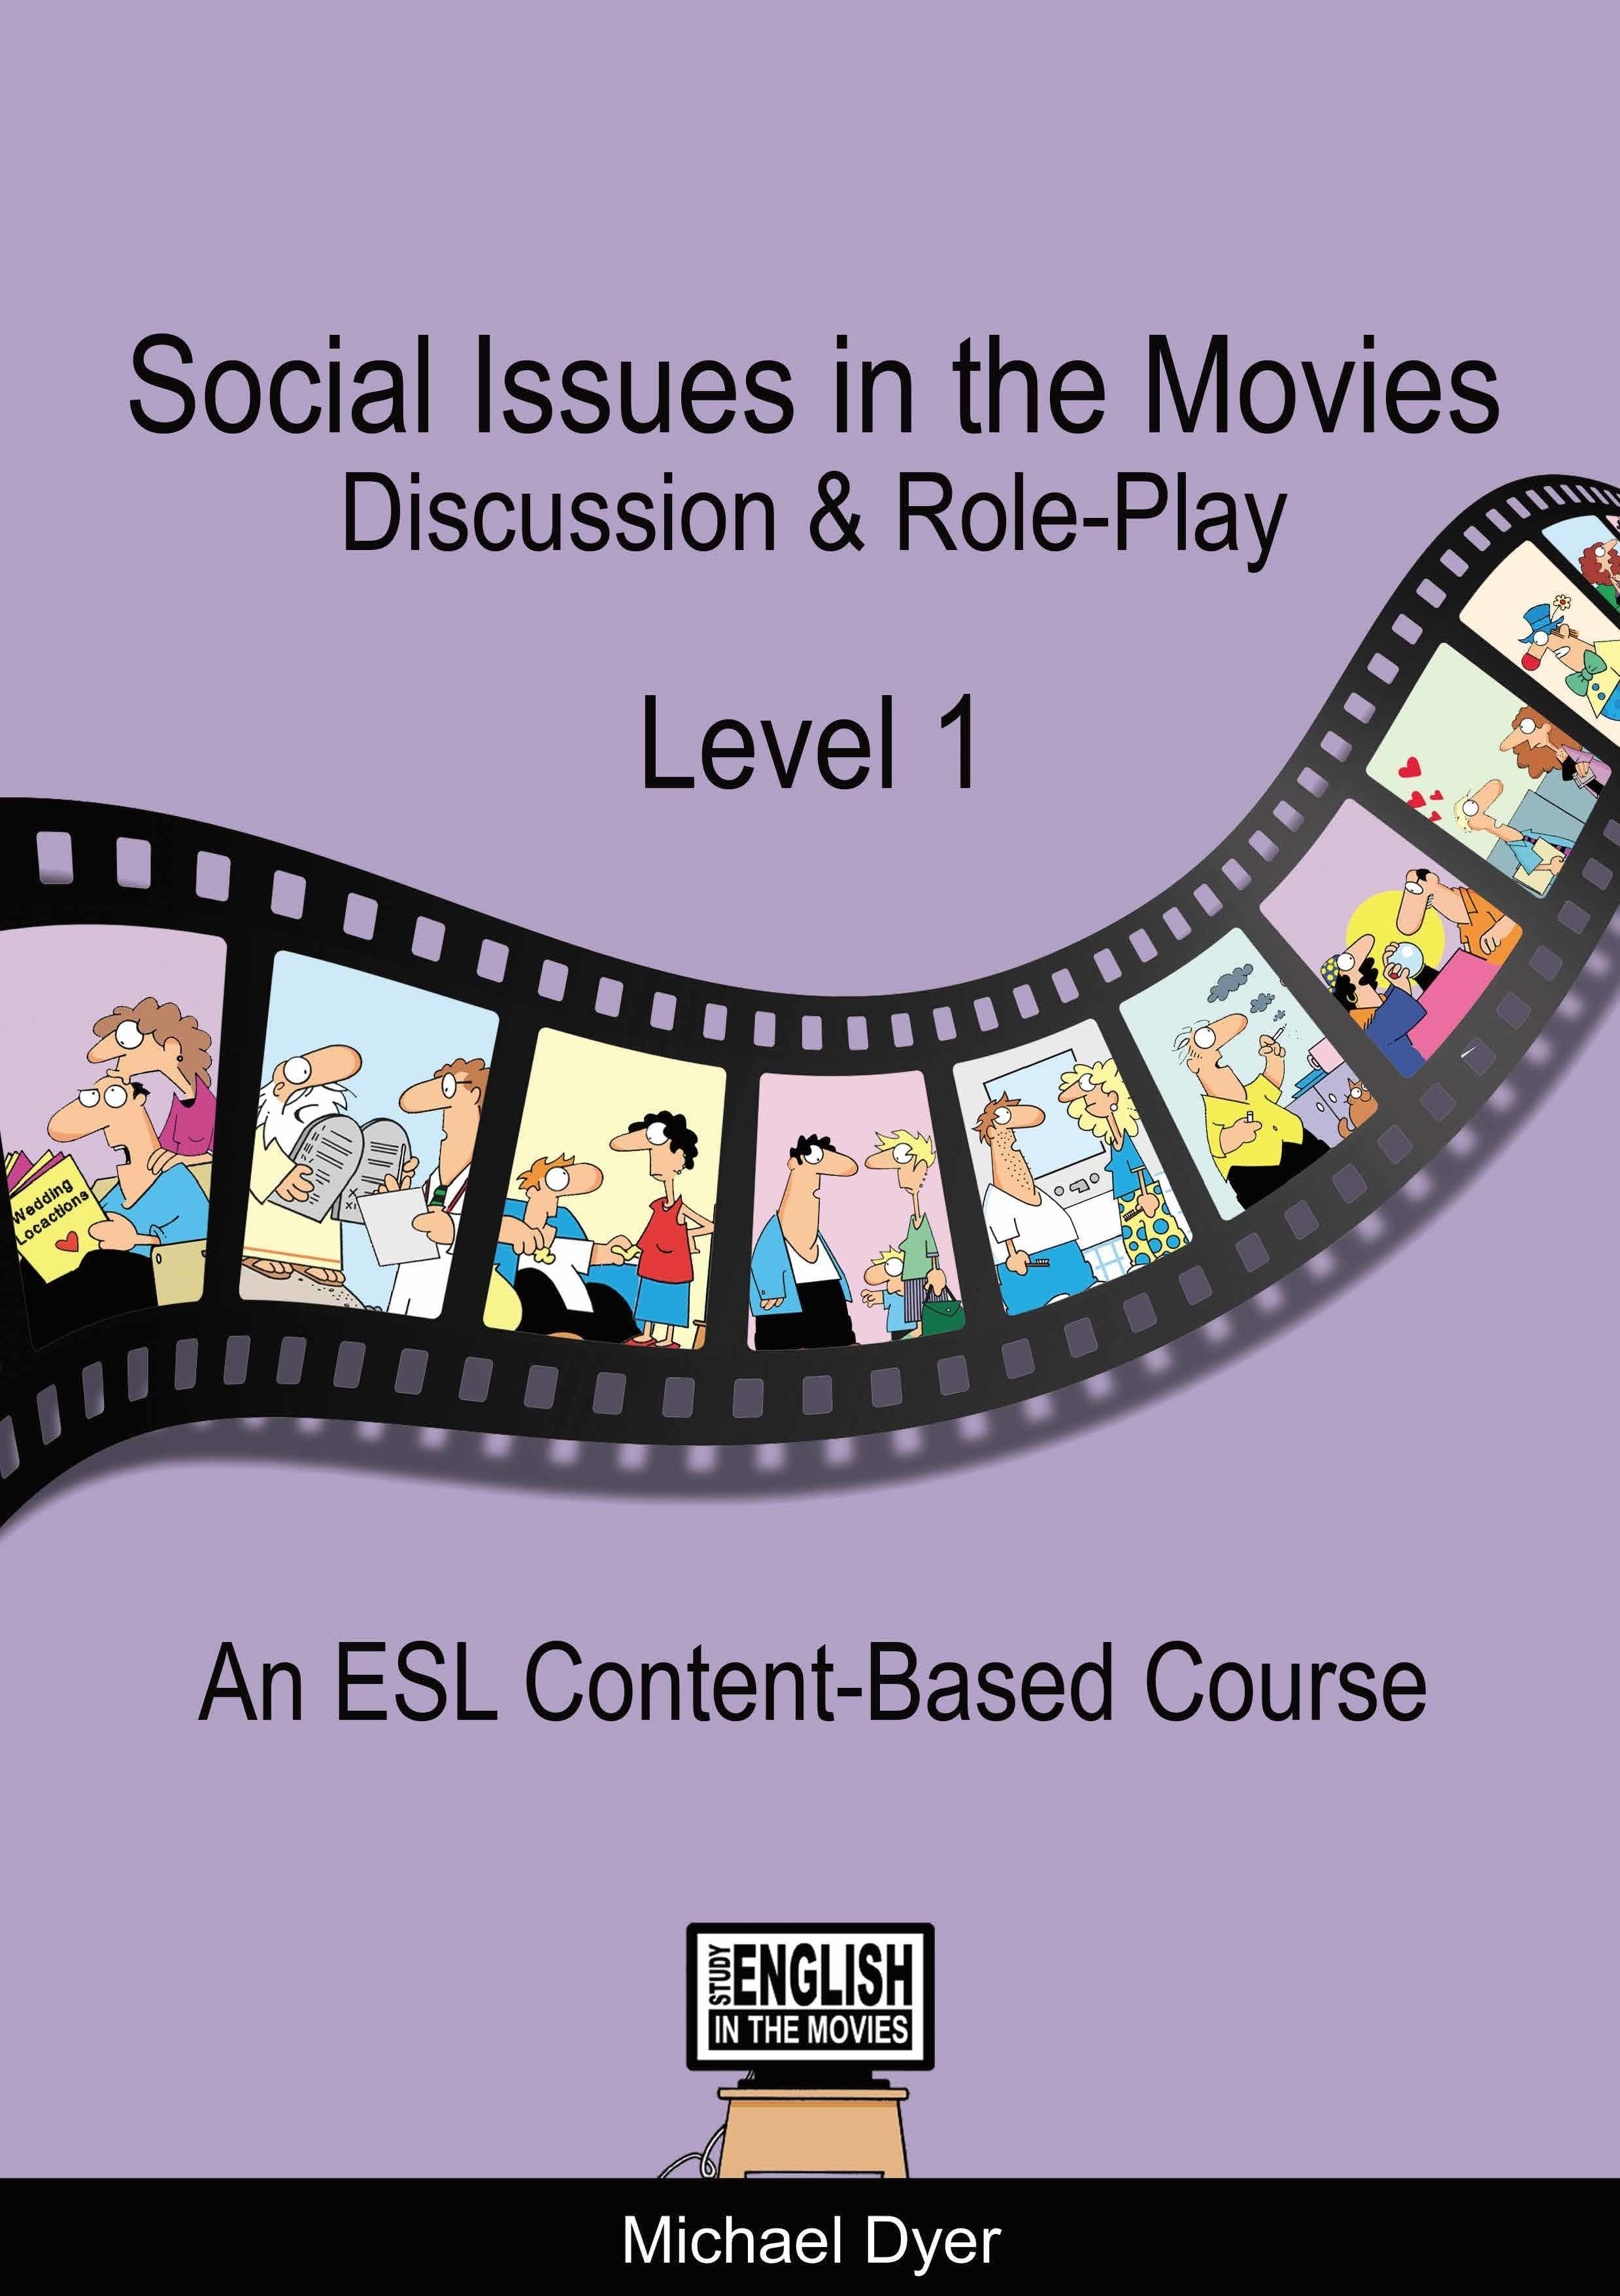 『Social Issues in the Movies Level1』Michael Dyer 著